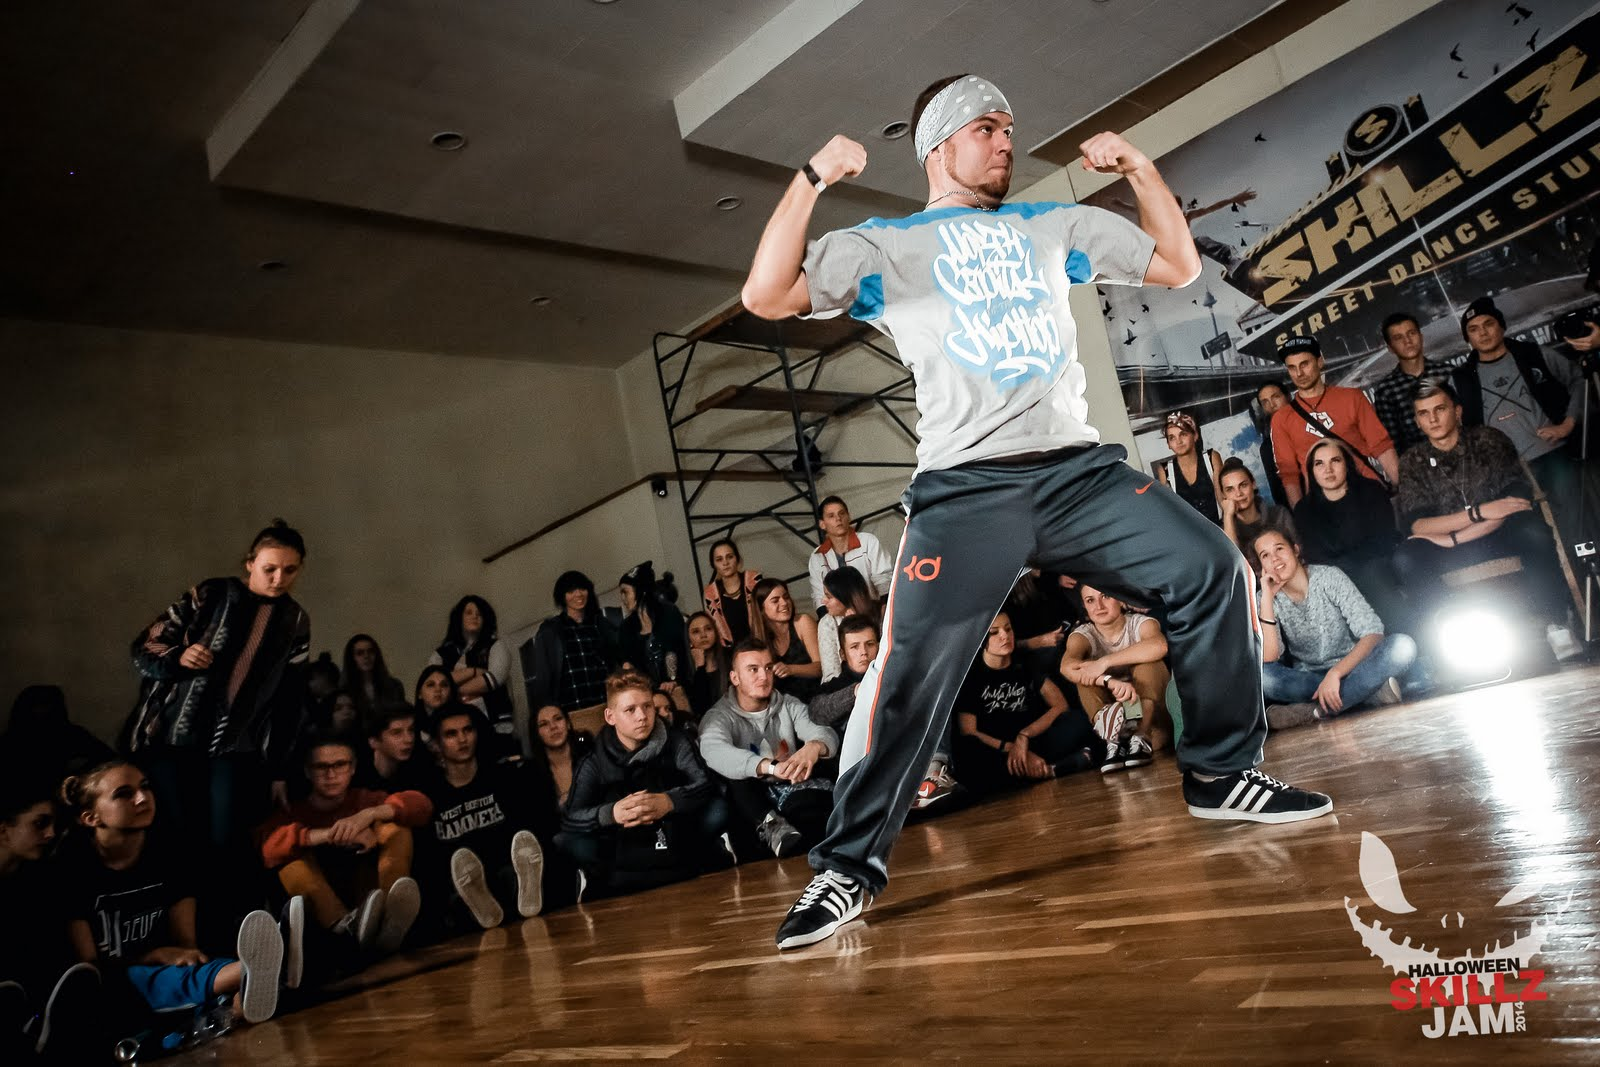 SKILLZ Halloween Jam Battles - a_MG_2331.jpg